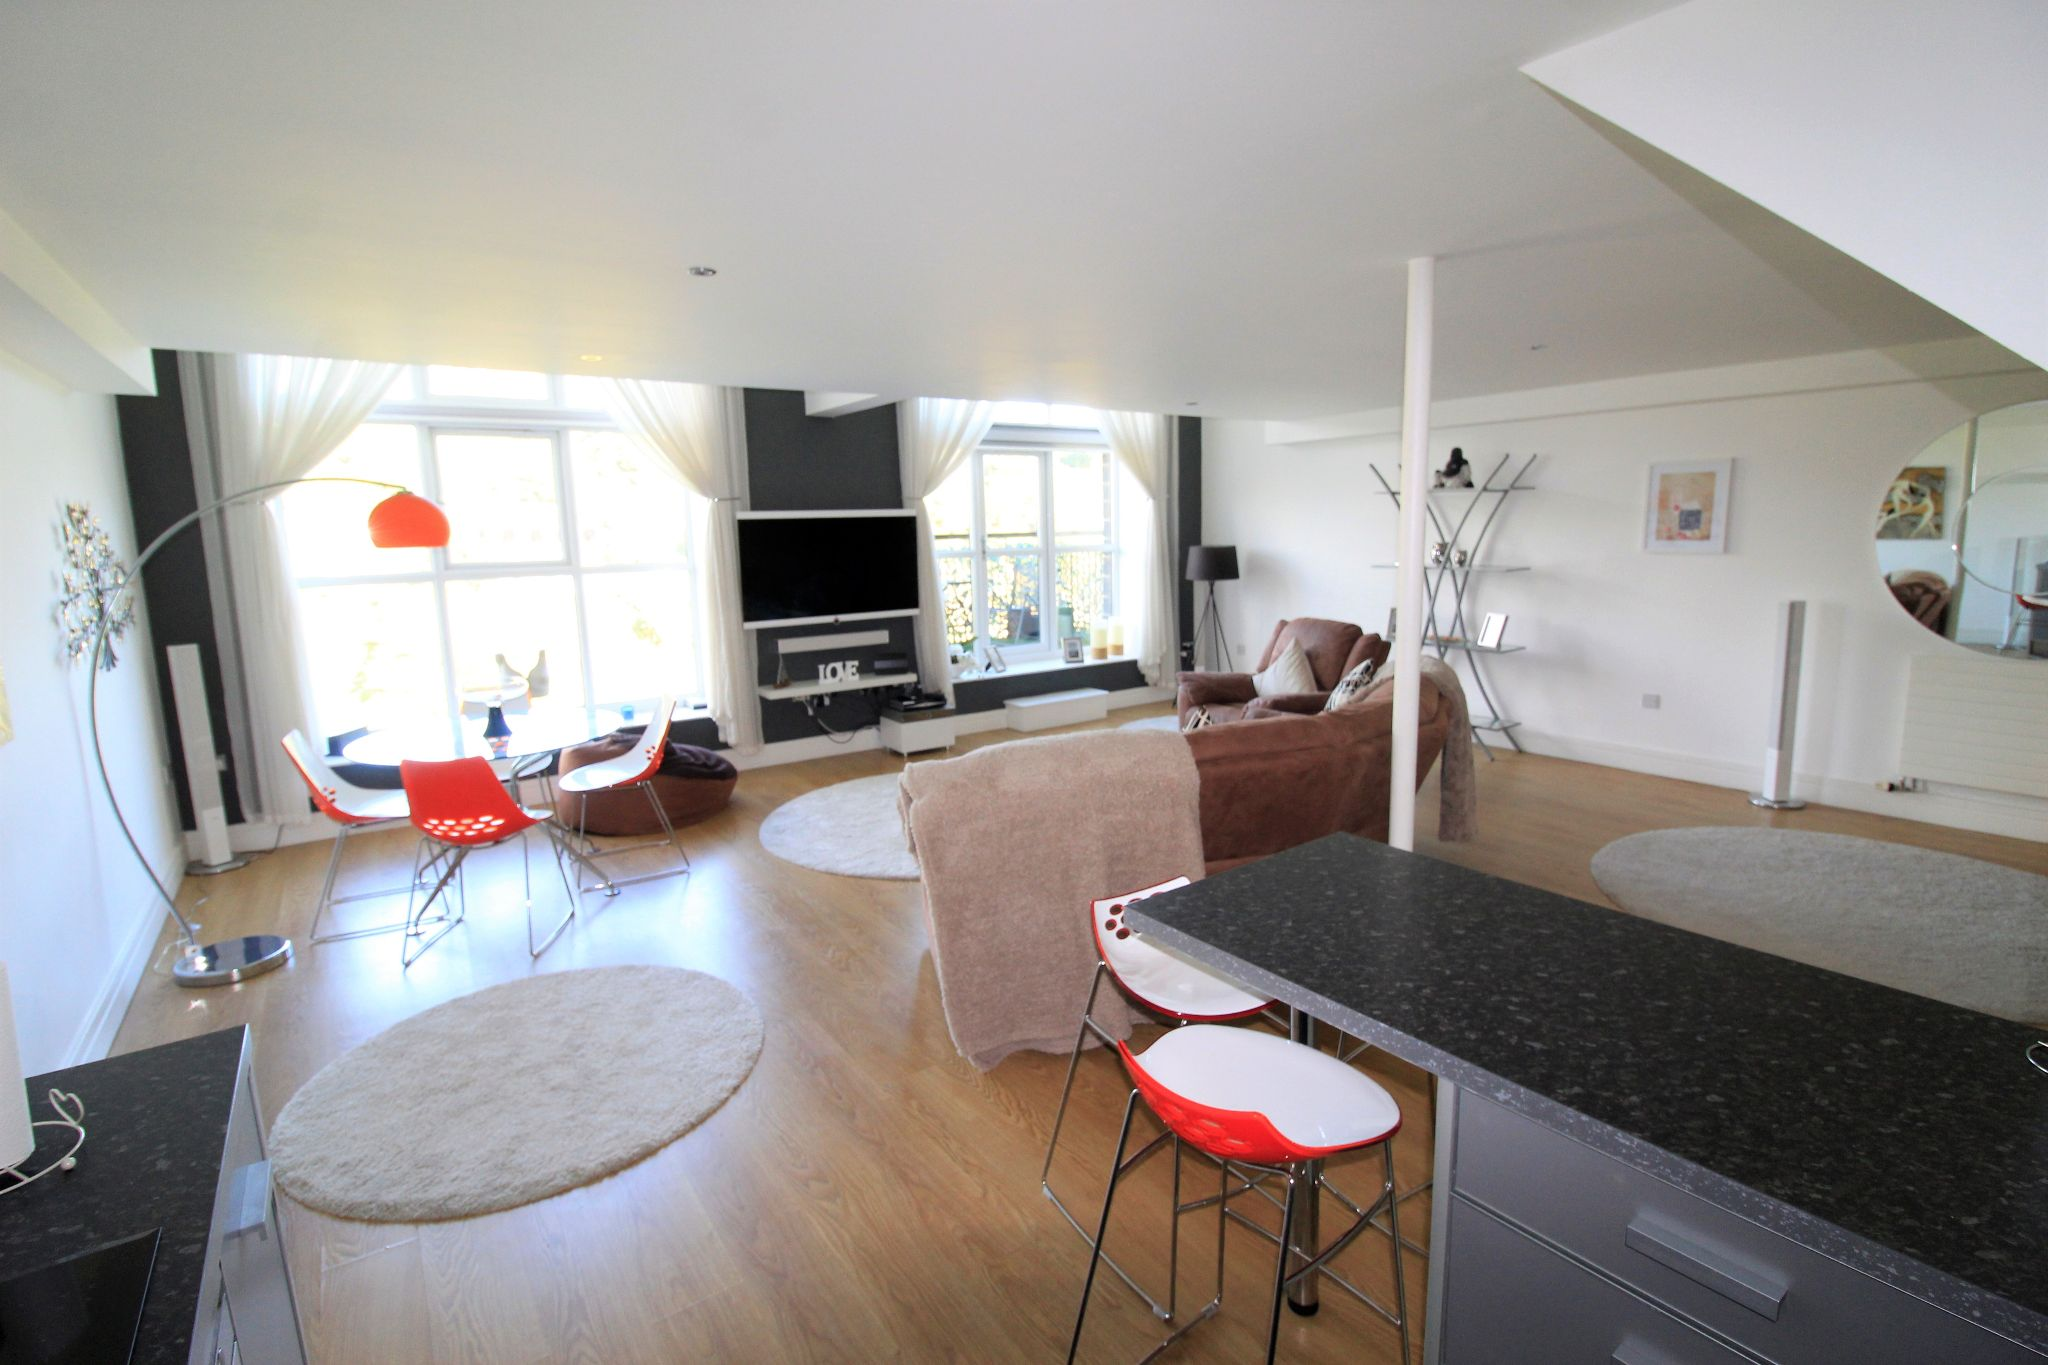 2 bedroom penthouse flat/apartment For Sale in Huddersfield - Photograph 1